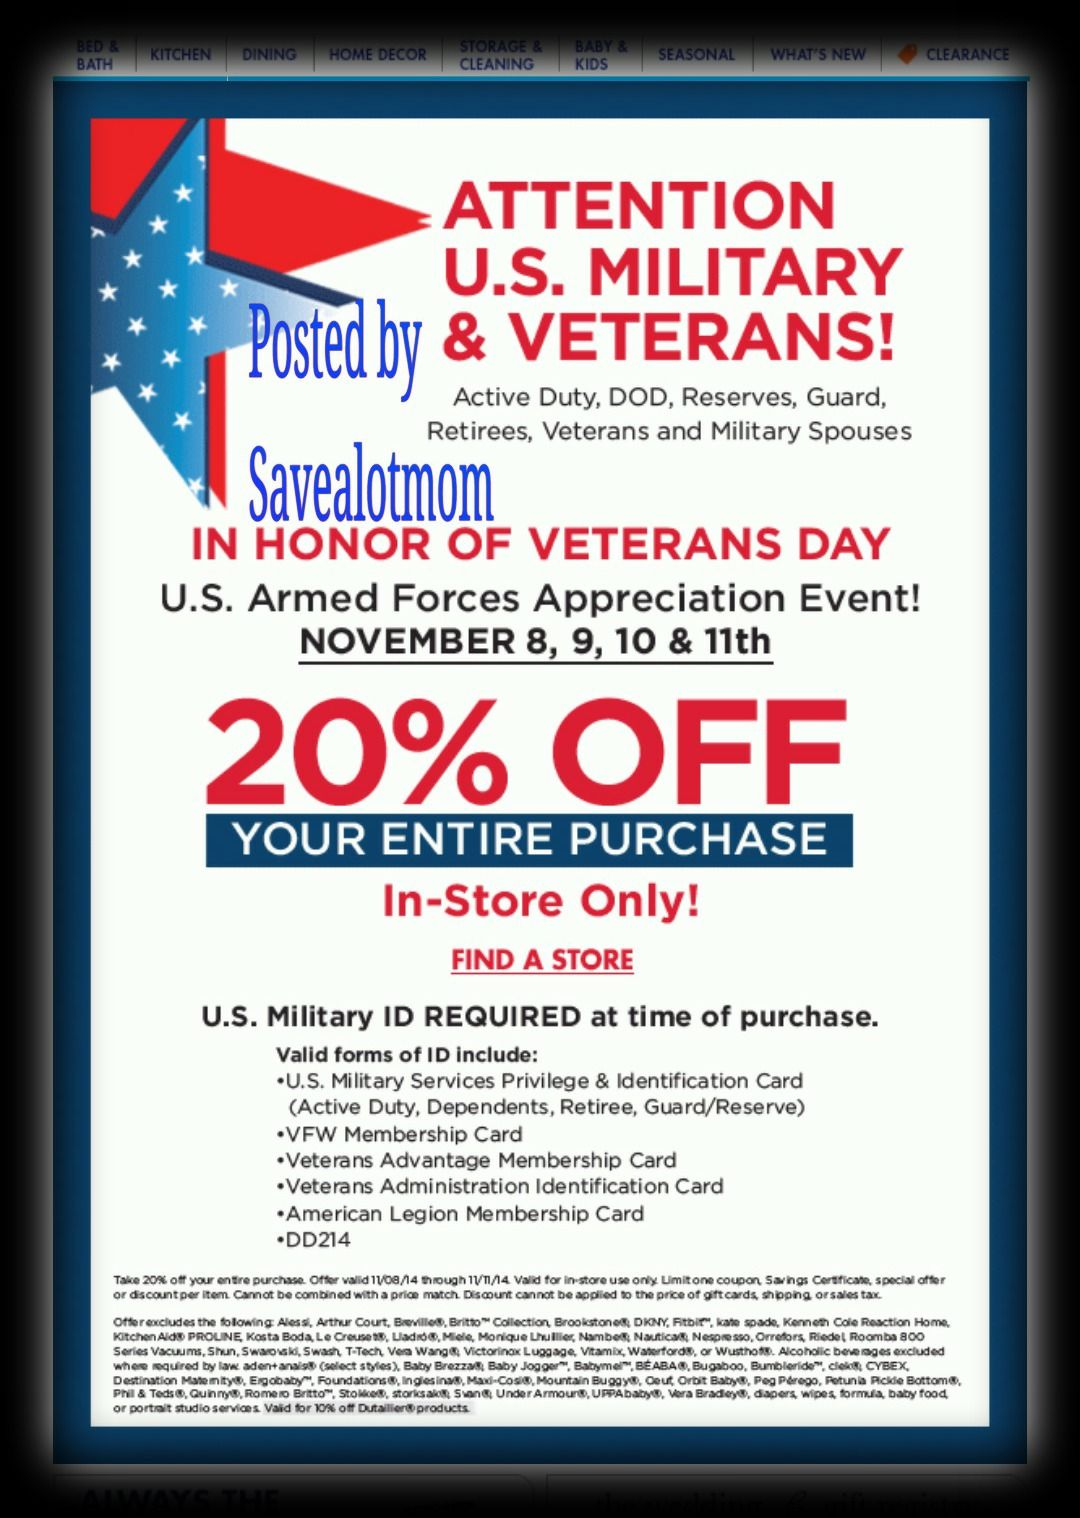 Bed Bath & Beyond Veterans Day Discount | Save A Lot Mom | kdhnews.com